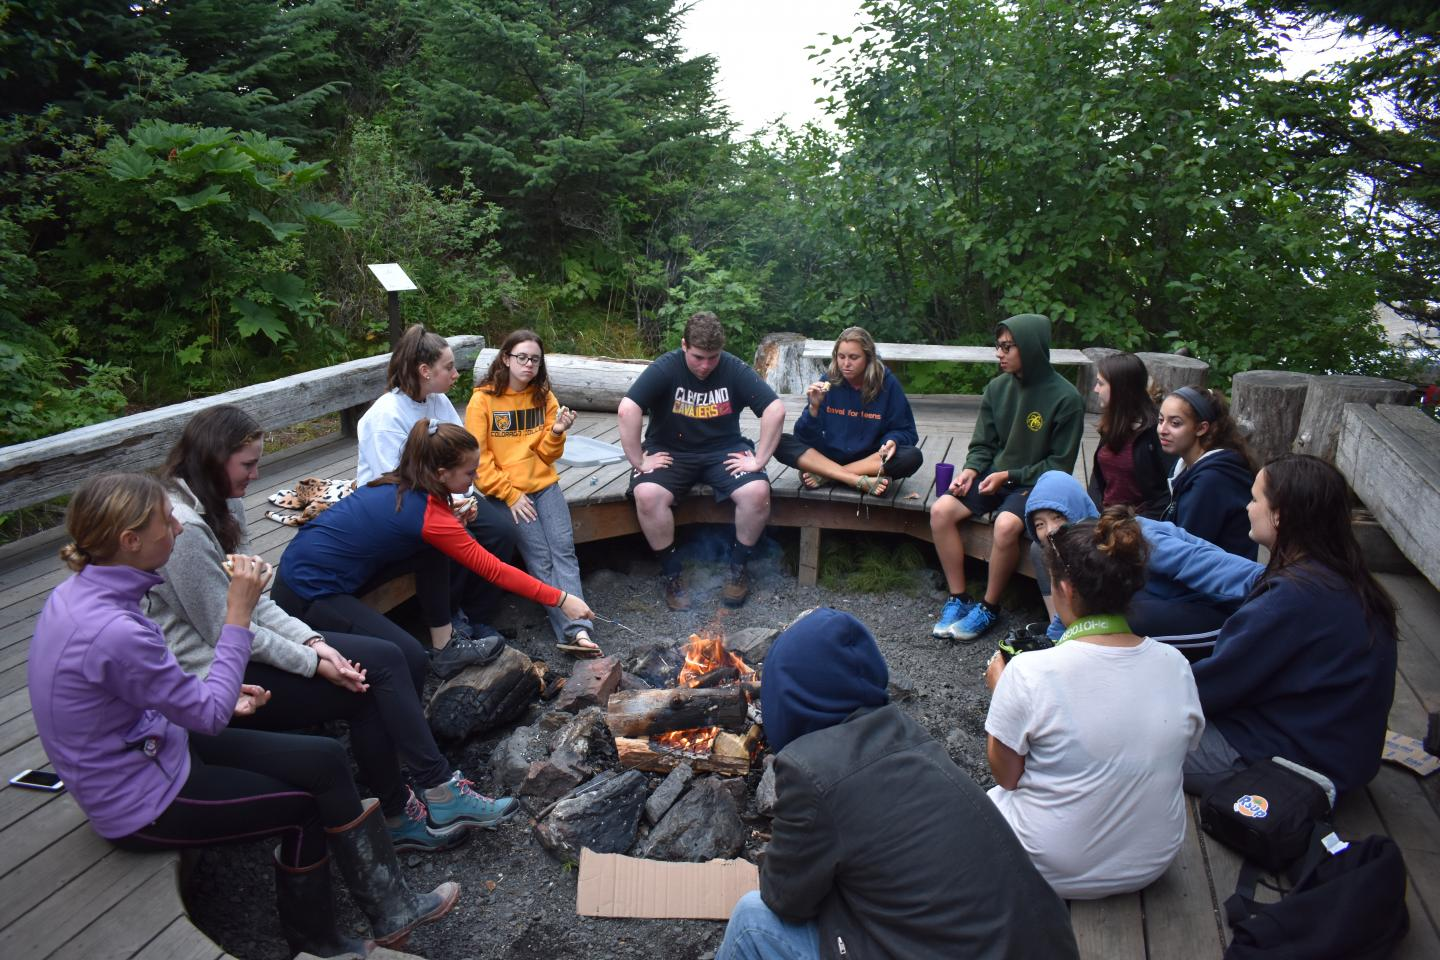 Teens hang out by the fire on service and adventure program in Alaska.